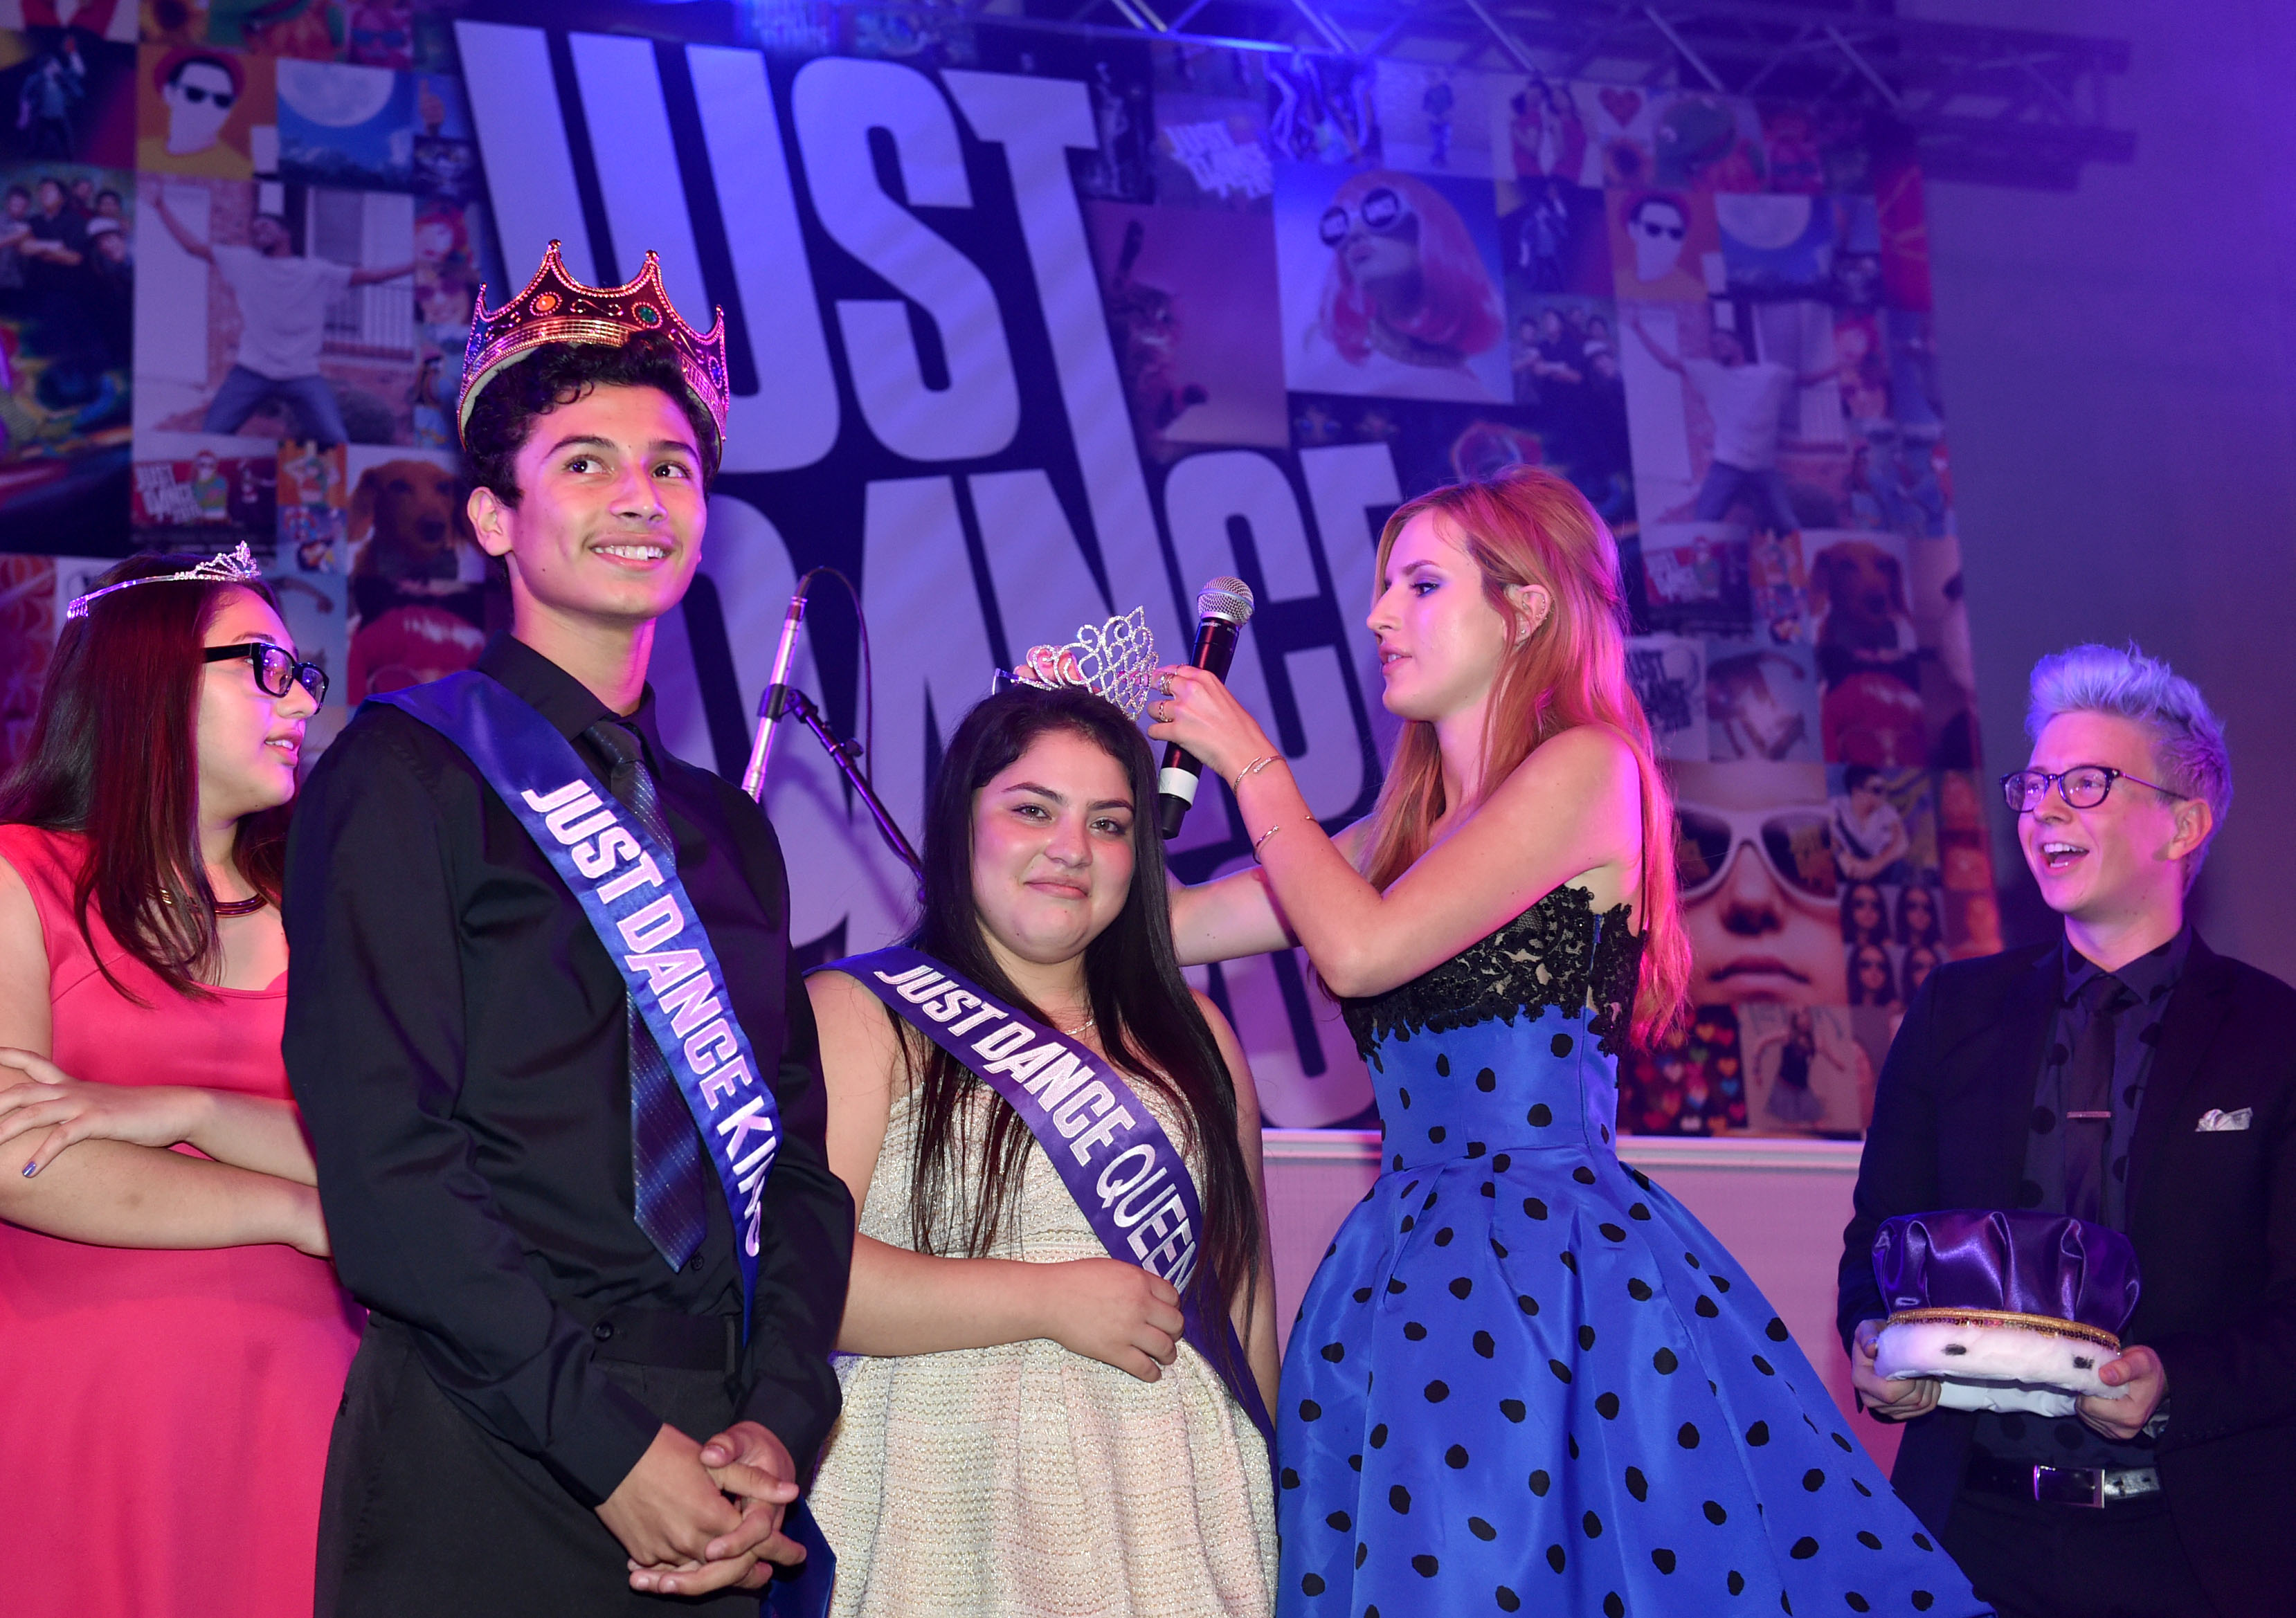 Bella Thorne crowns the homecoming king and queen on stage at the Just Dance Homecoming celebrating the launch of Just Dance 2015 at Aspire Pacific Academy on Wednesday, Oct. 22, 2014, in Huntington Park, Calif. (Photo by John Shearer/Invision for Ubisoft/AP Images)